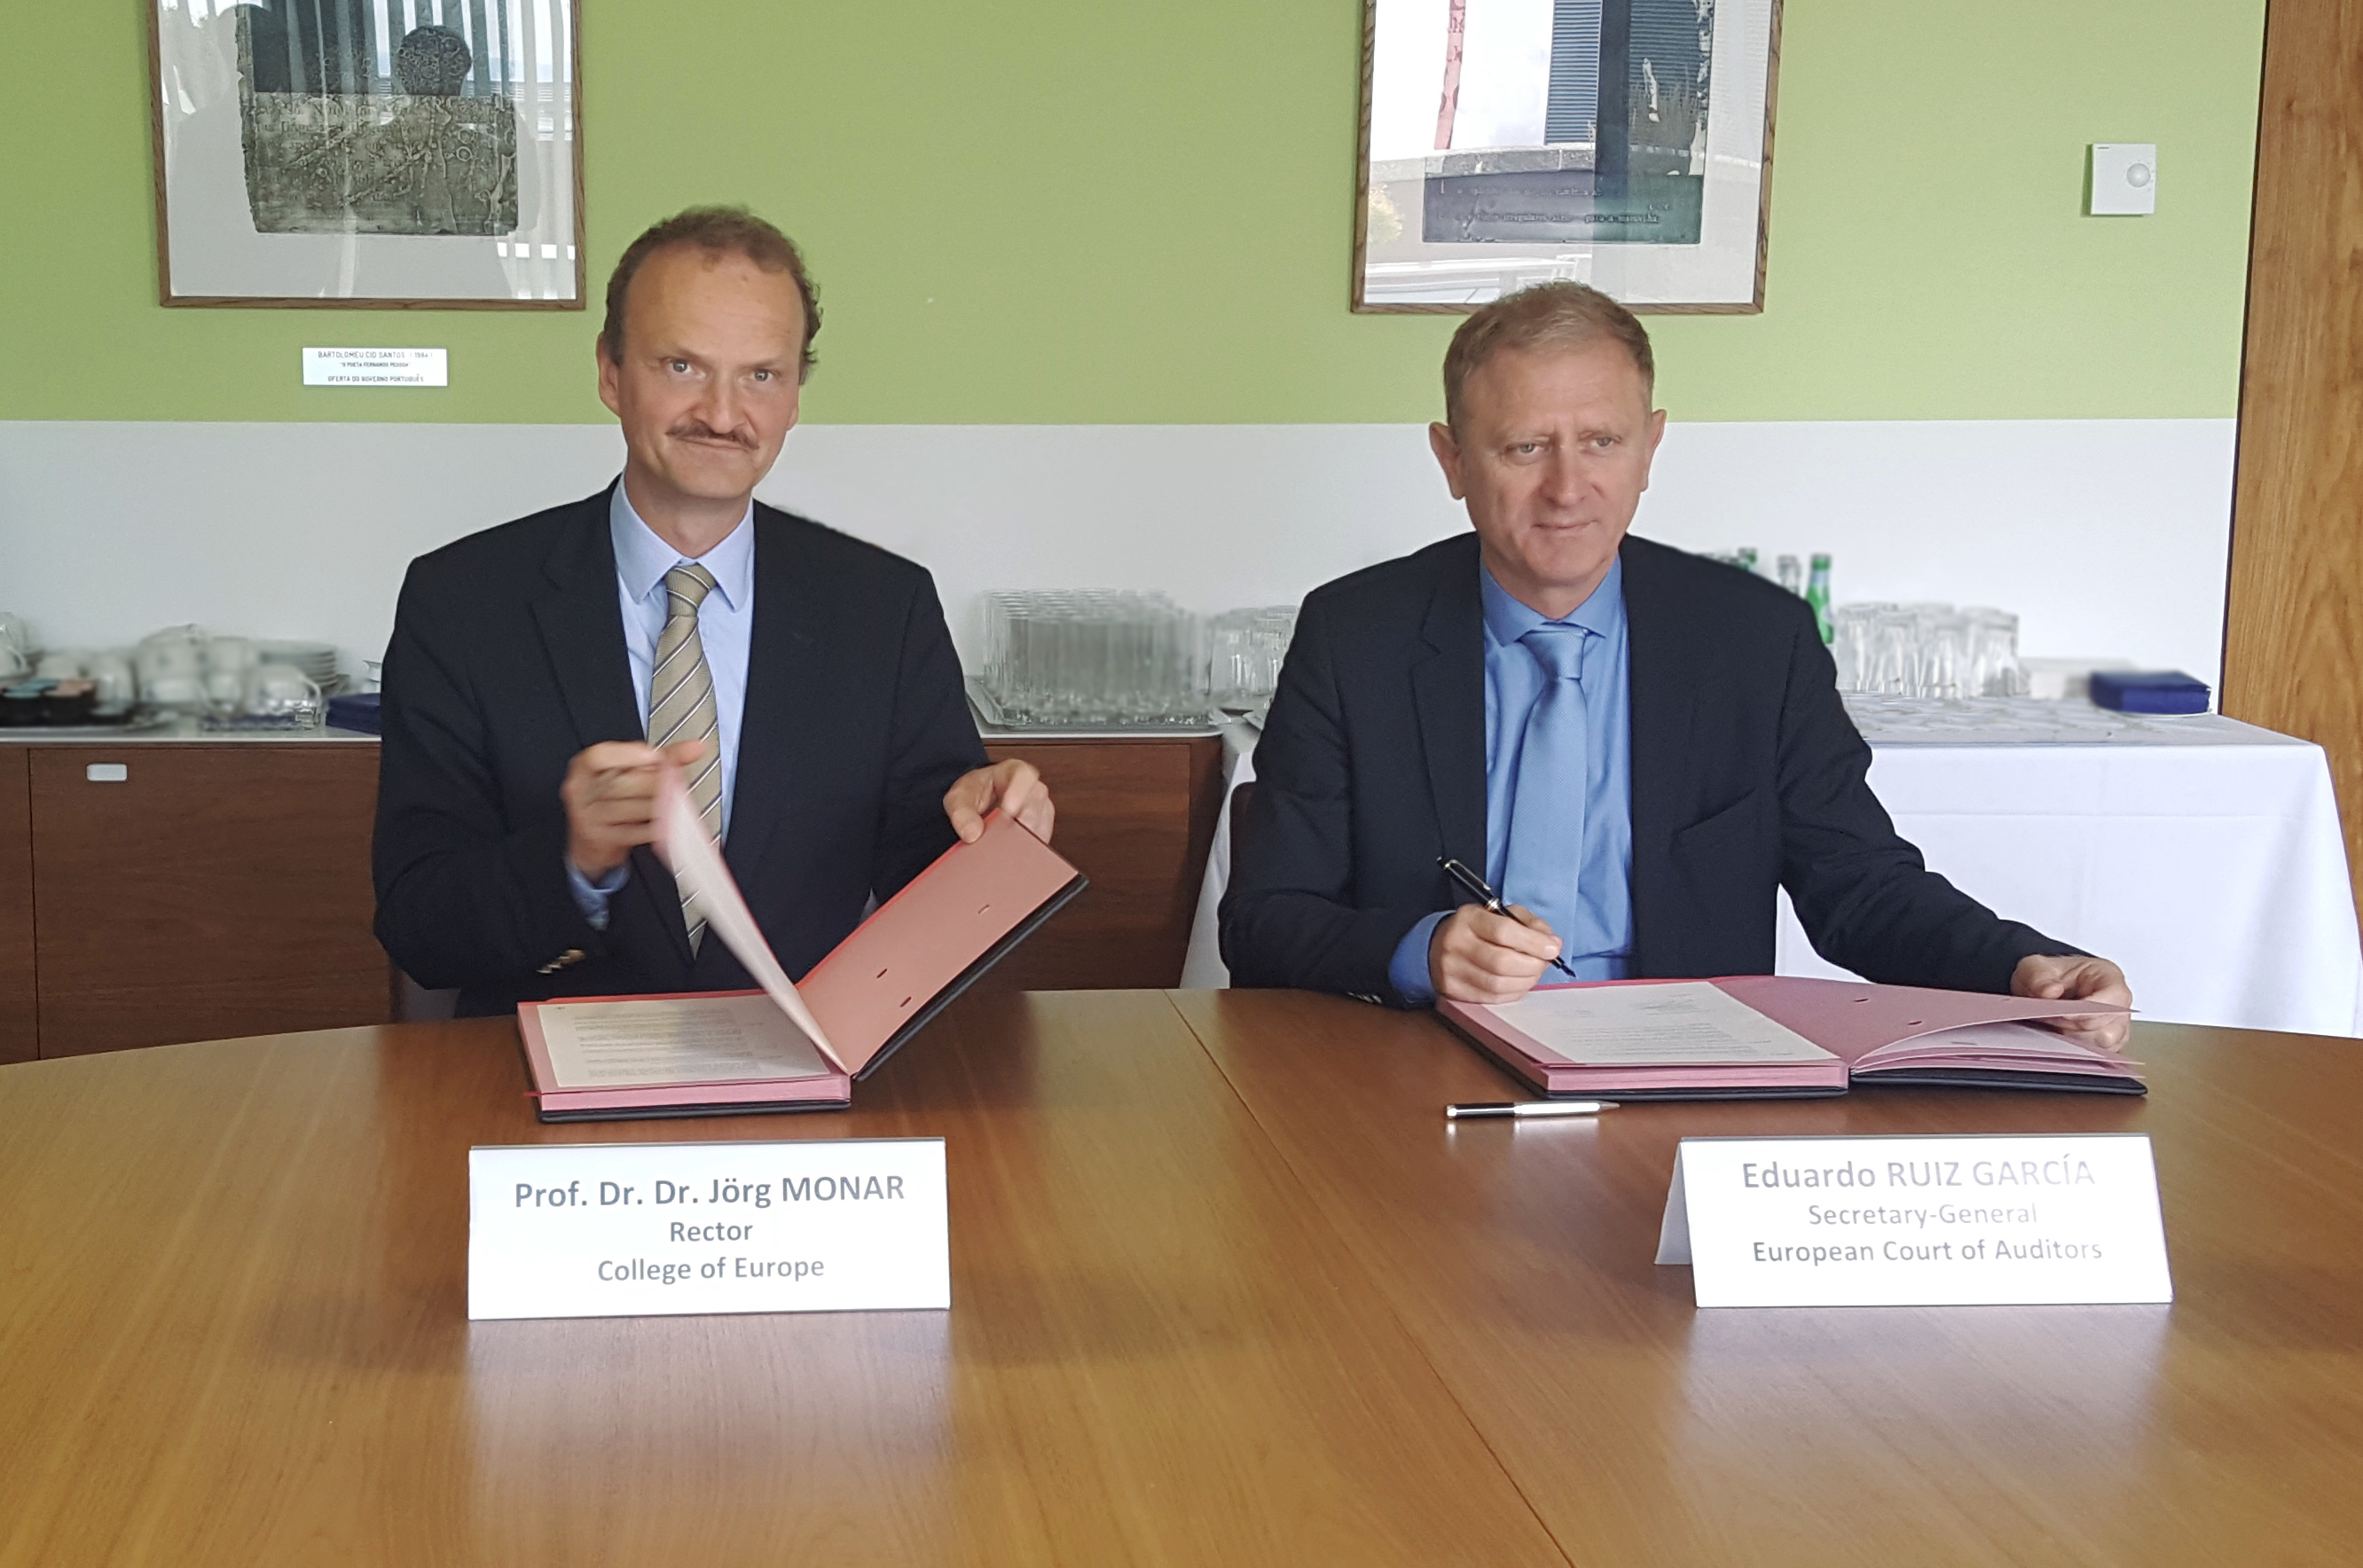 The ECA has signed a partnership agreement with the College of Europe